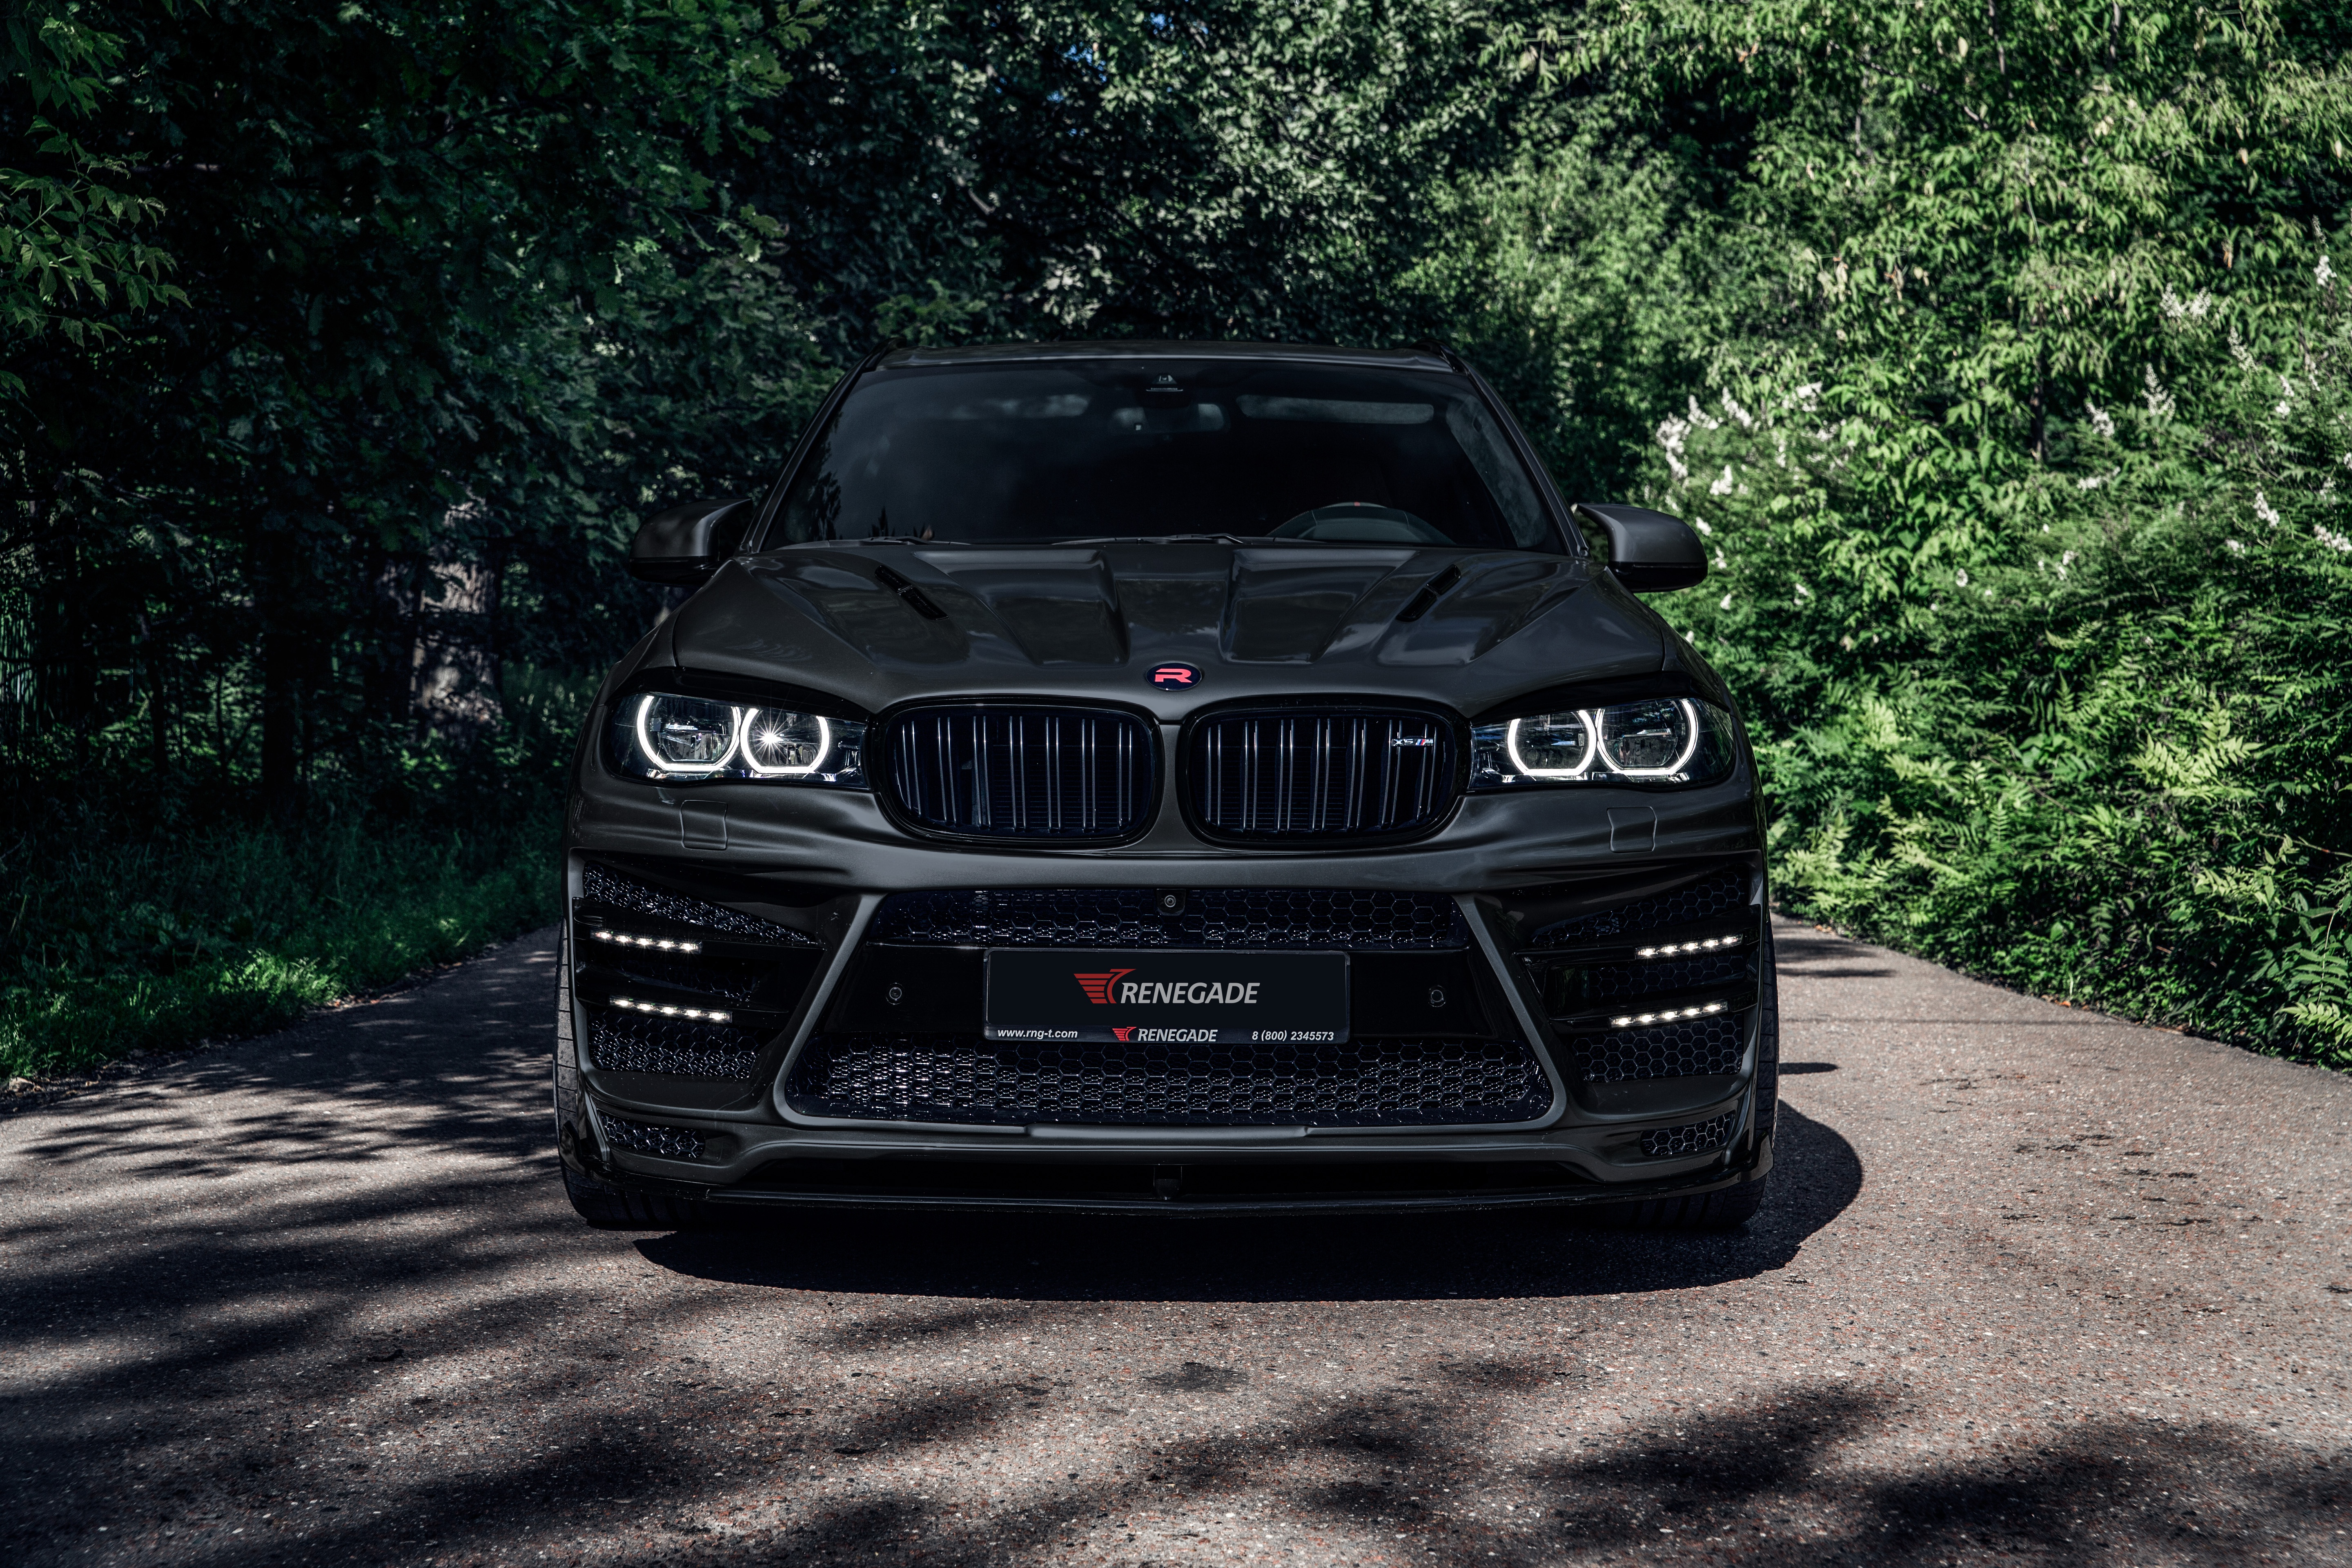 43 Bmw X5 Hd Wallpapers Background Images Wallpaper Abyss